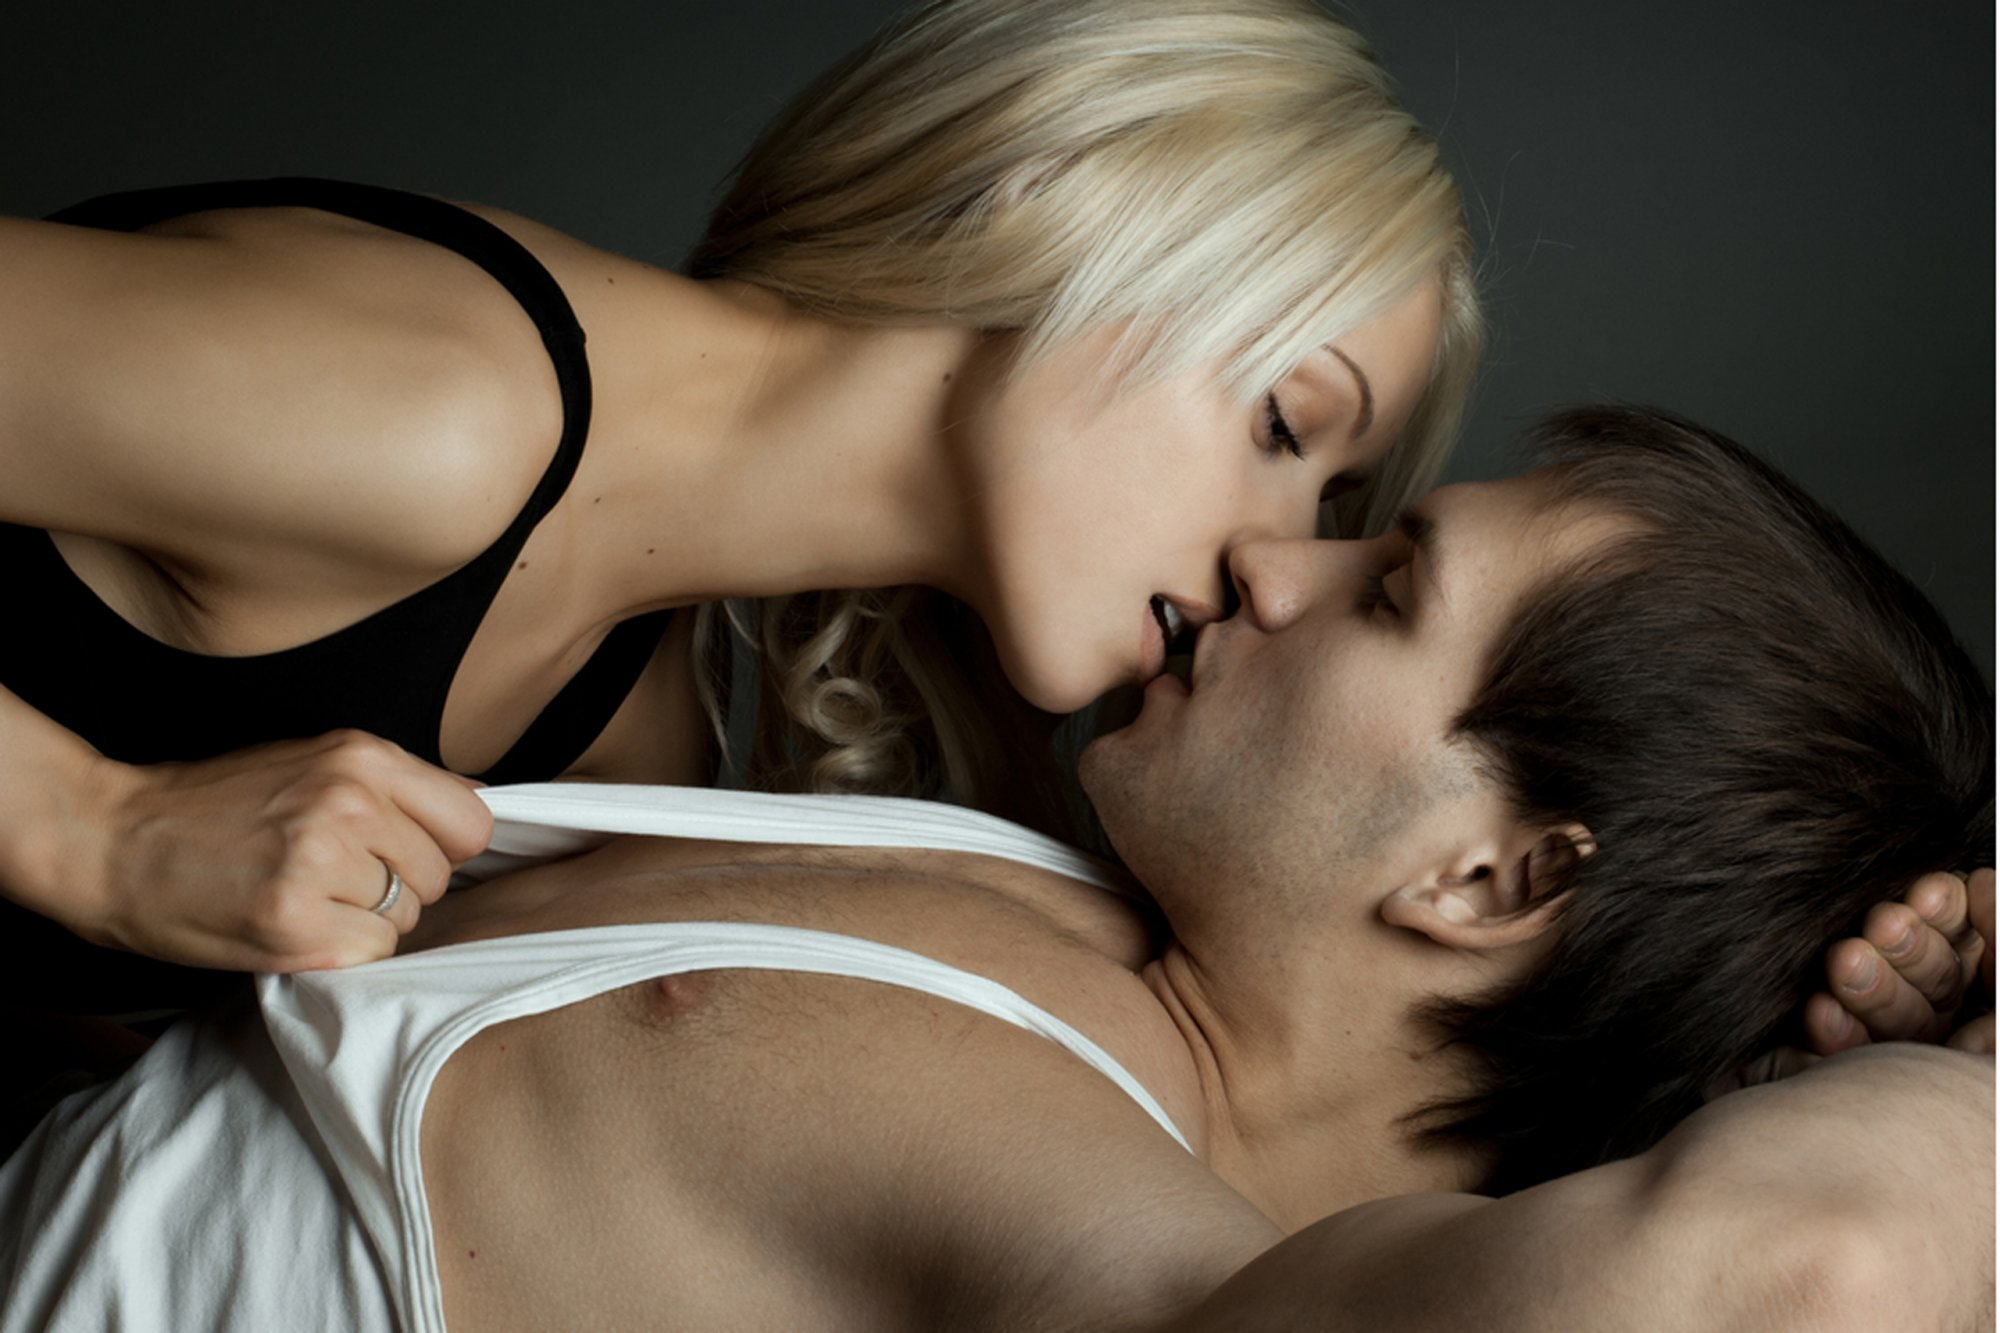 Cuckold niche and how many couples do that to spice up their sex life